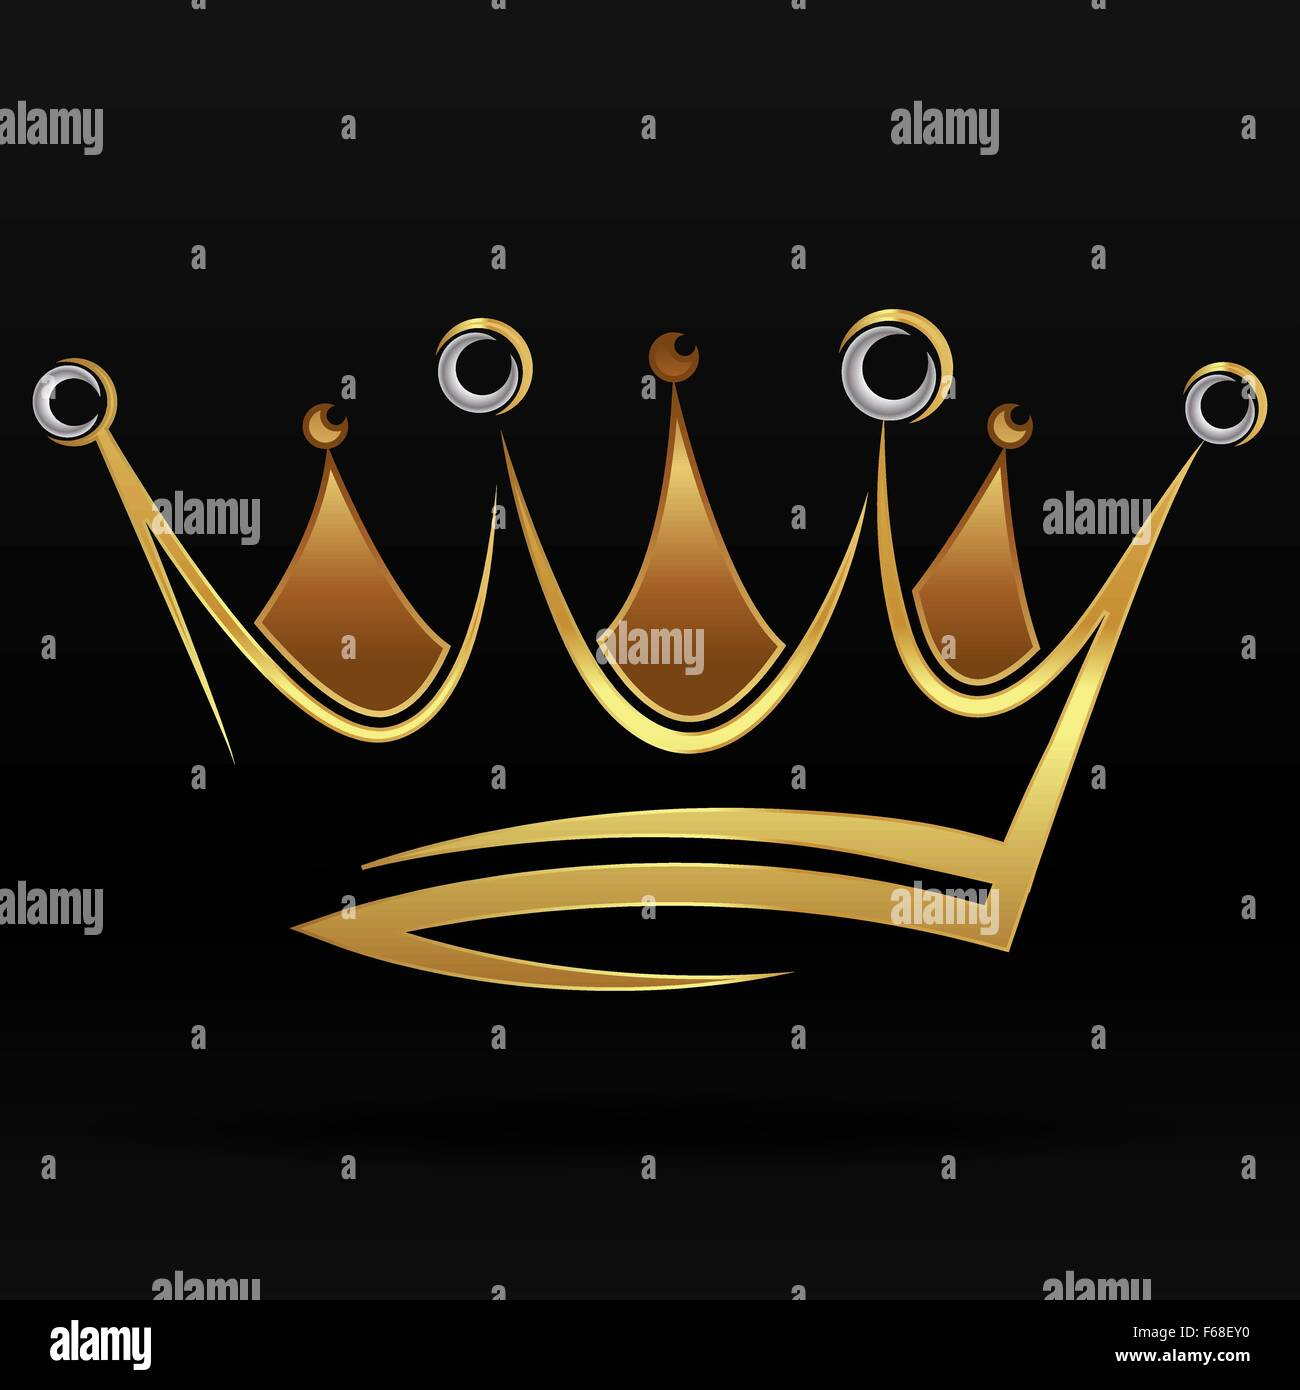 gold abstract crown for graphic design and logo on black